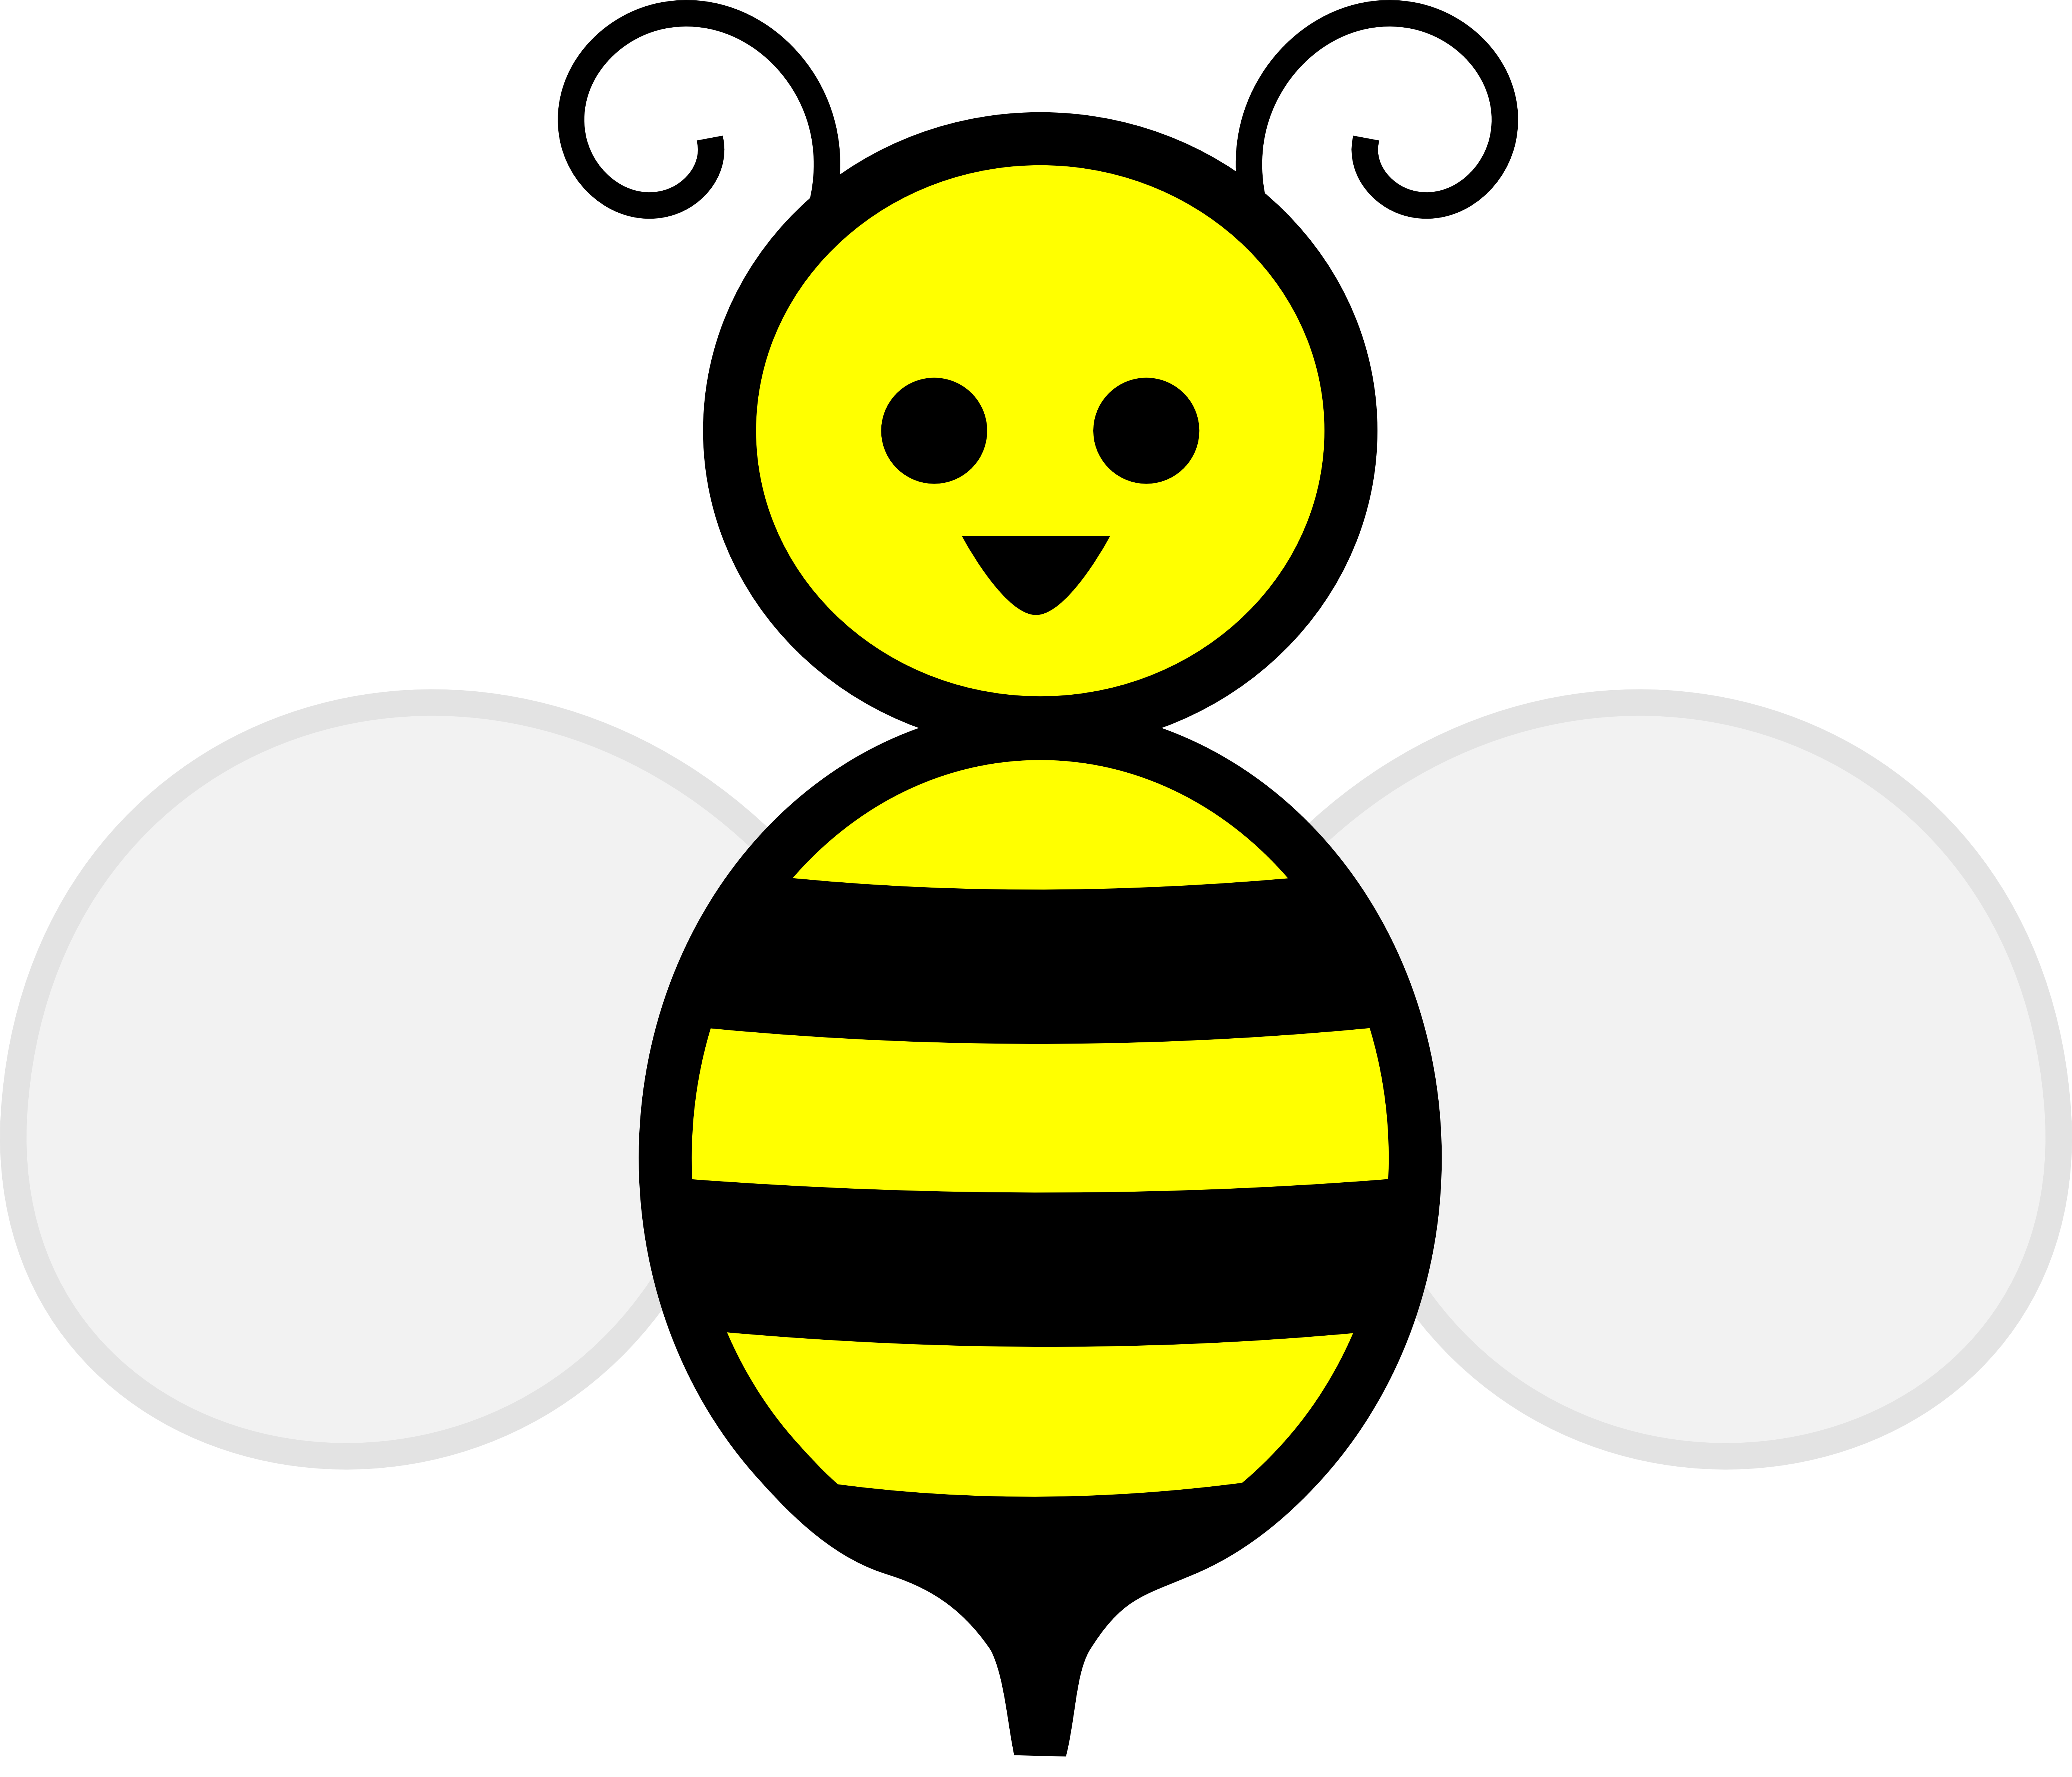 Farmer clipart bee. Free cartoon picture download